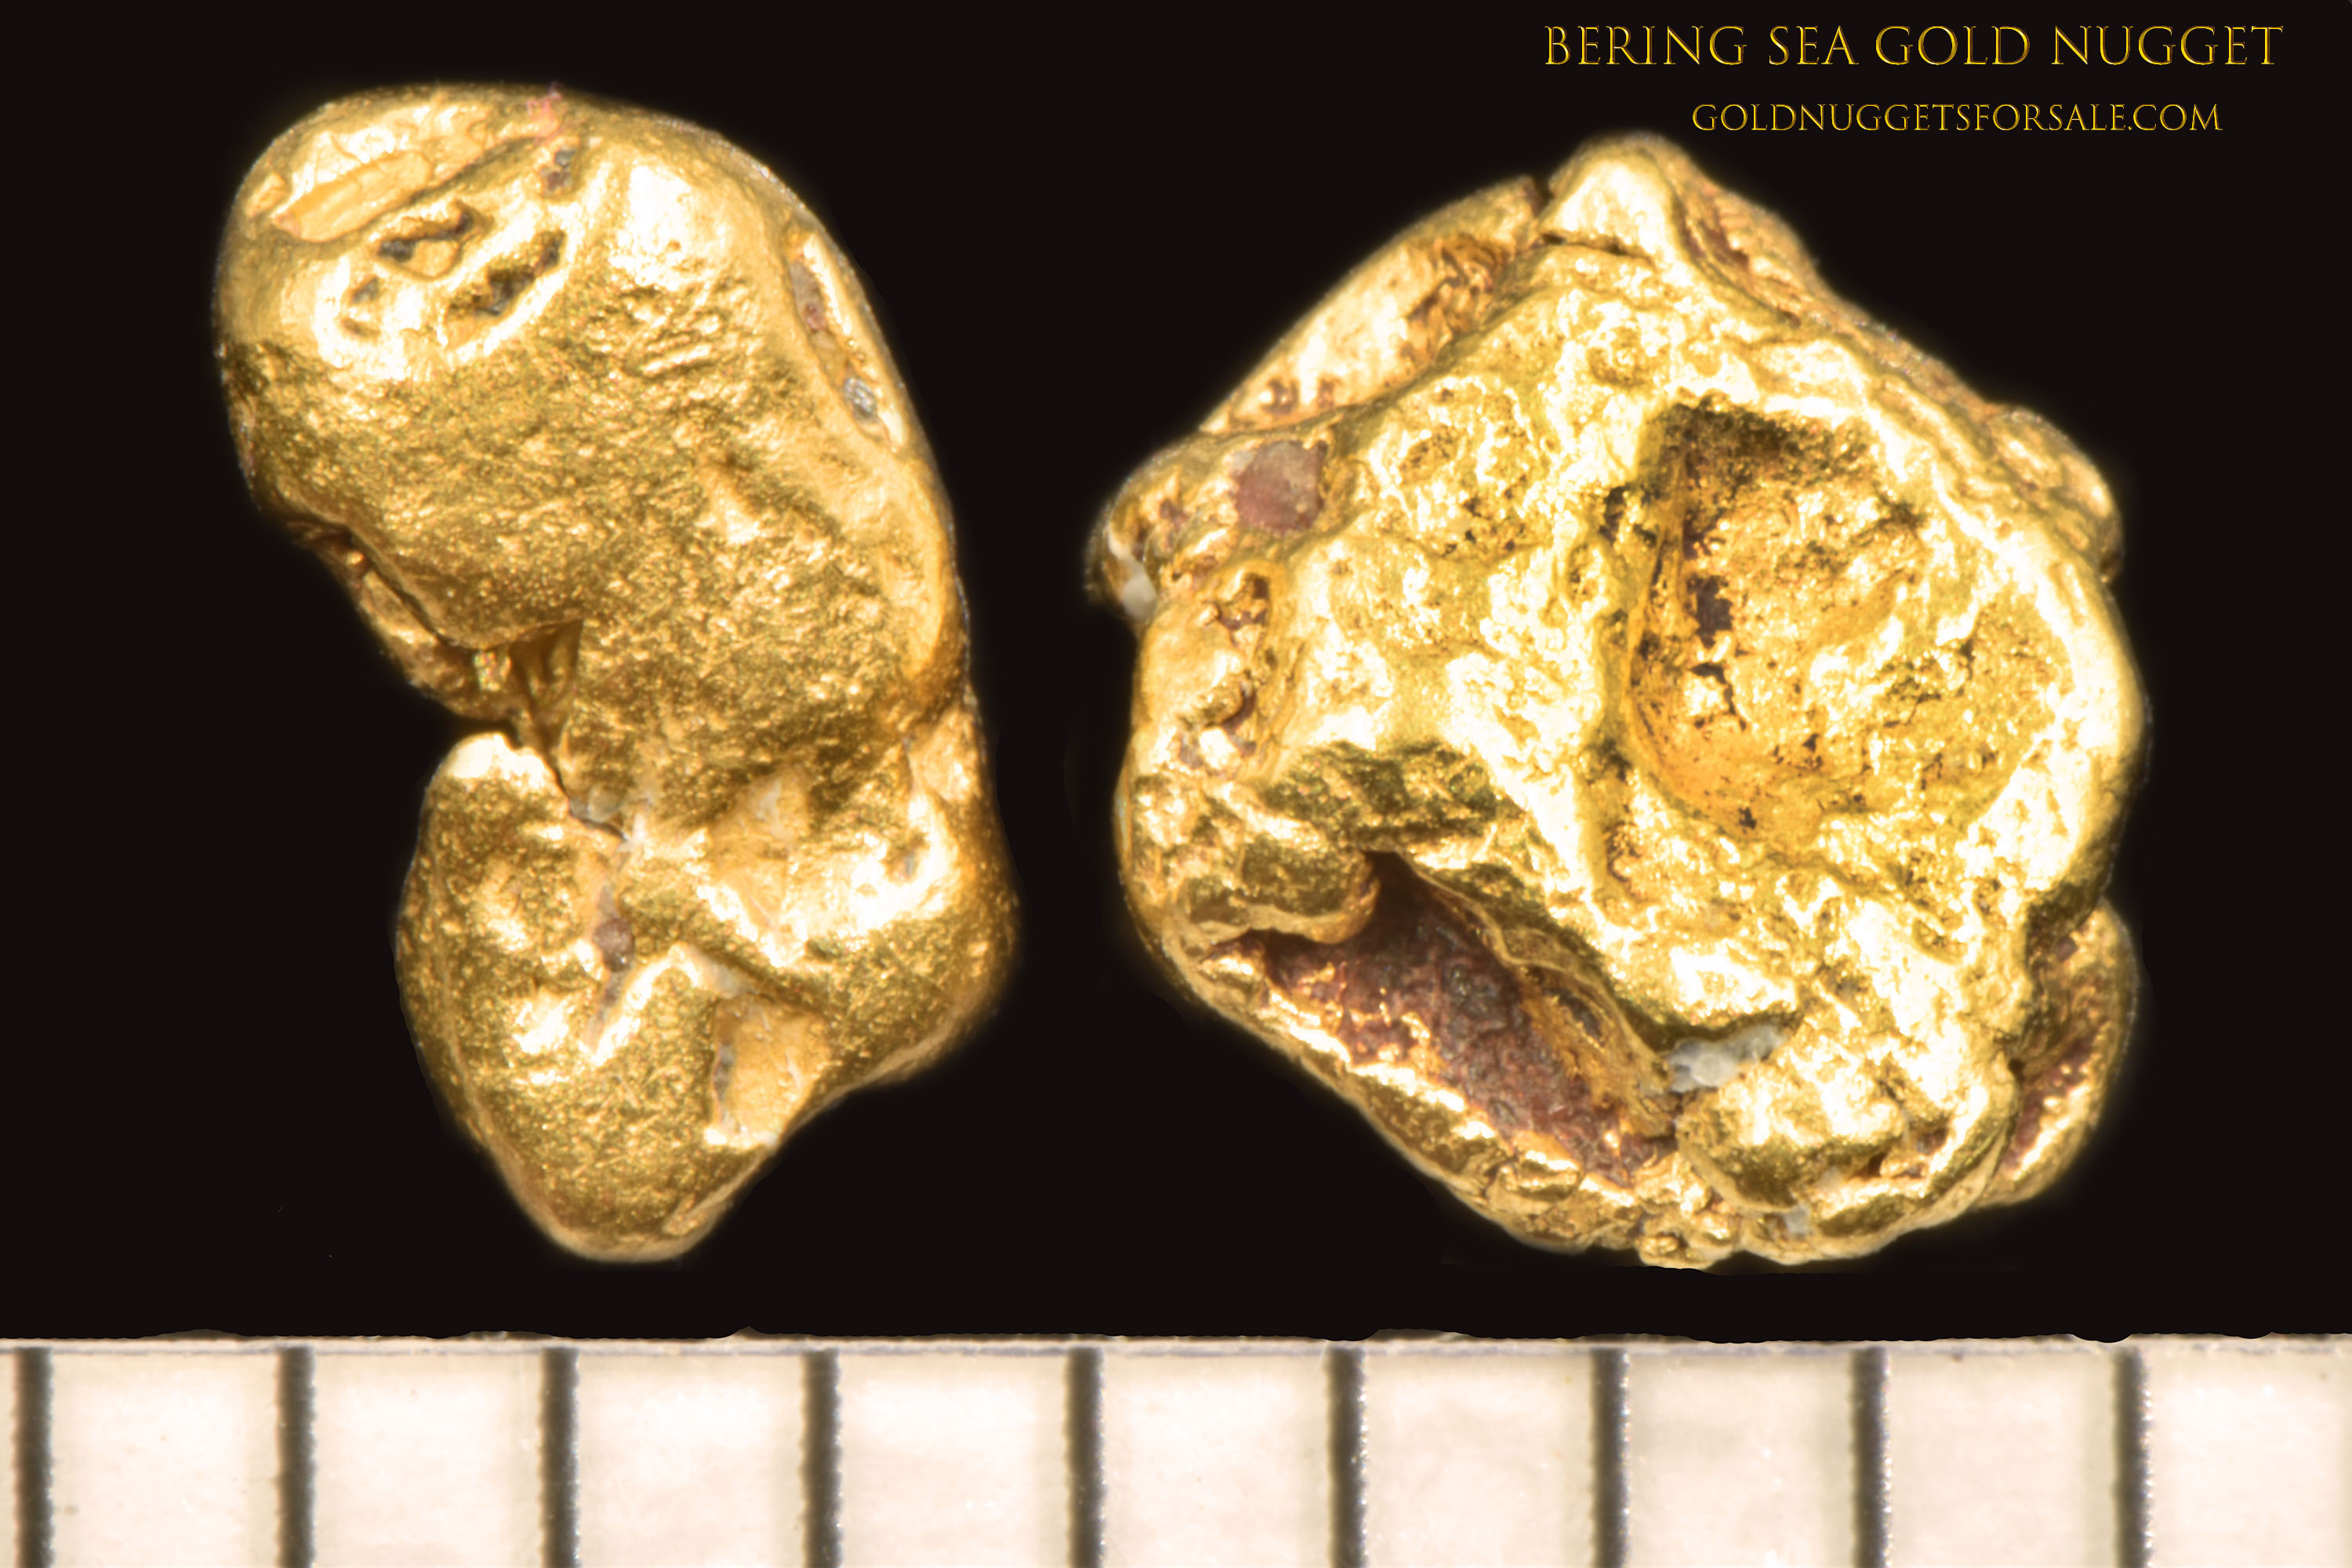 Beautiful Pair of Natural Bering Sea Gold Nuggets